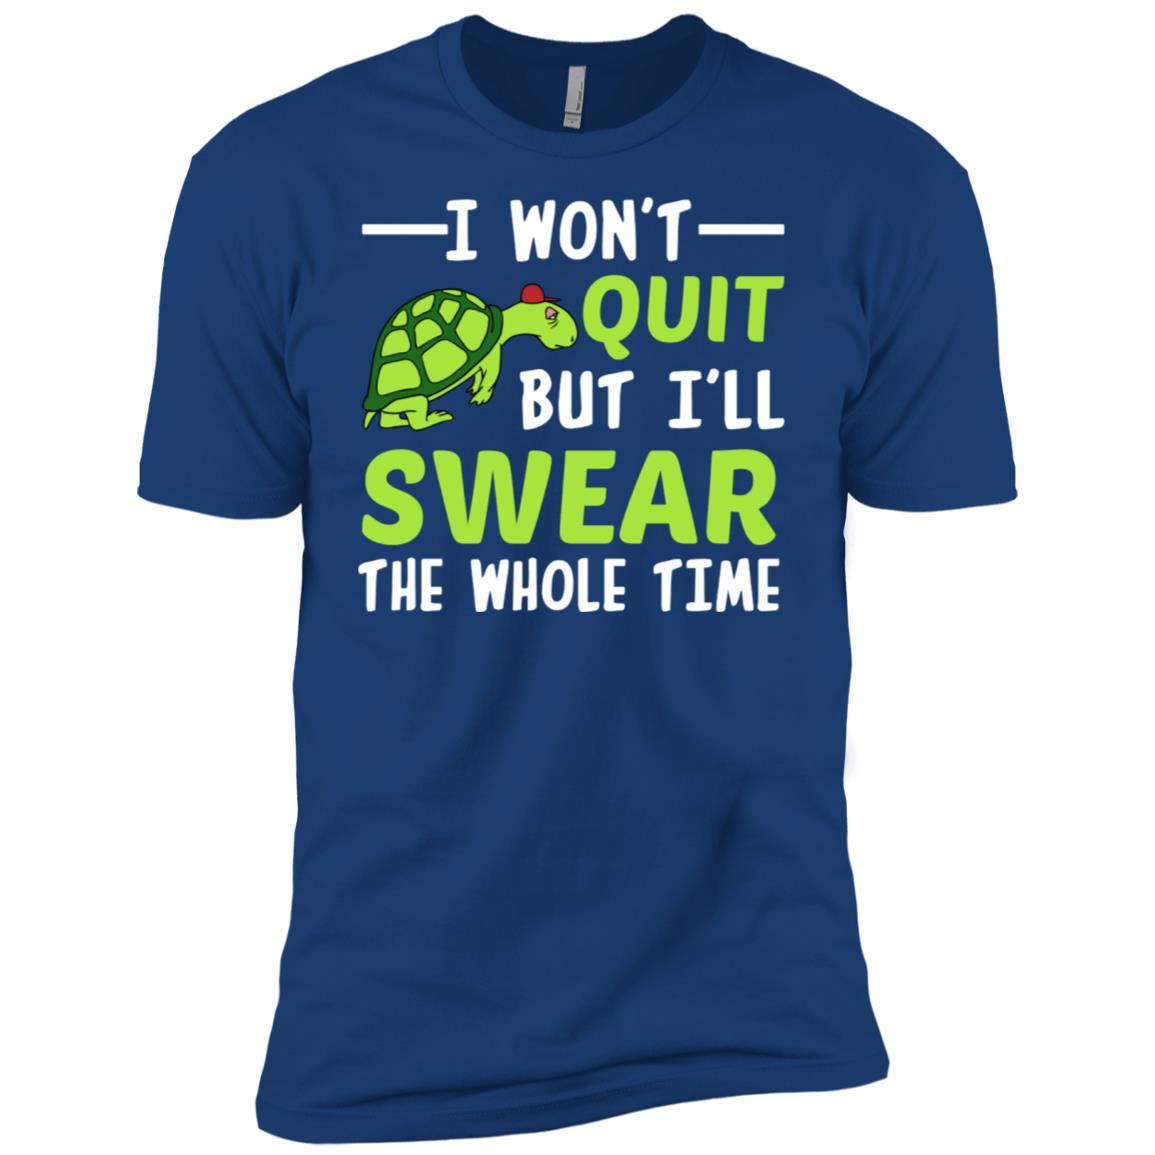 I Wont Quit But I Swear The Whole Time Funny Workout Running Men Short Sleeve T-Shirt